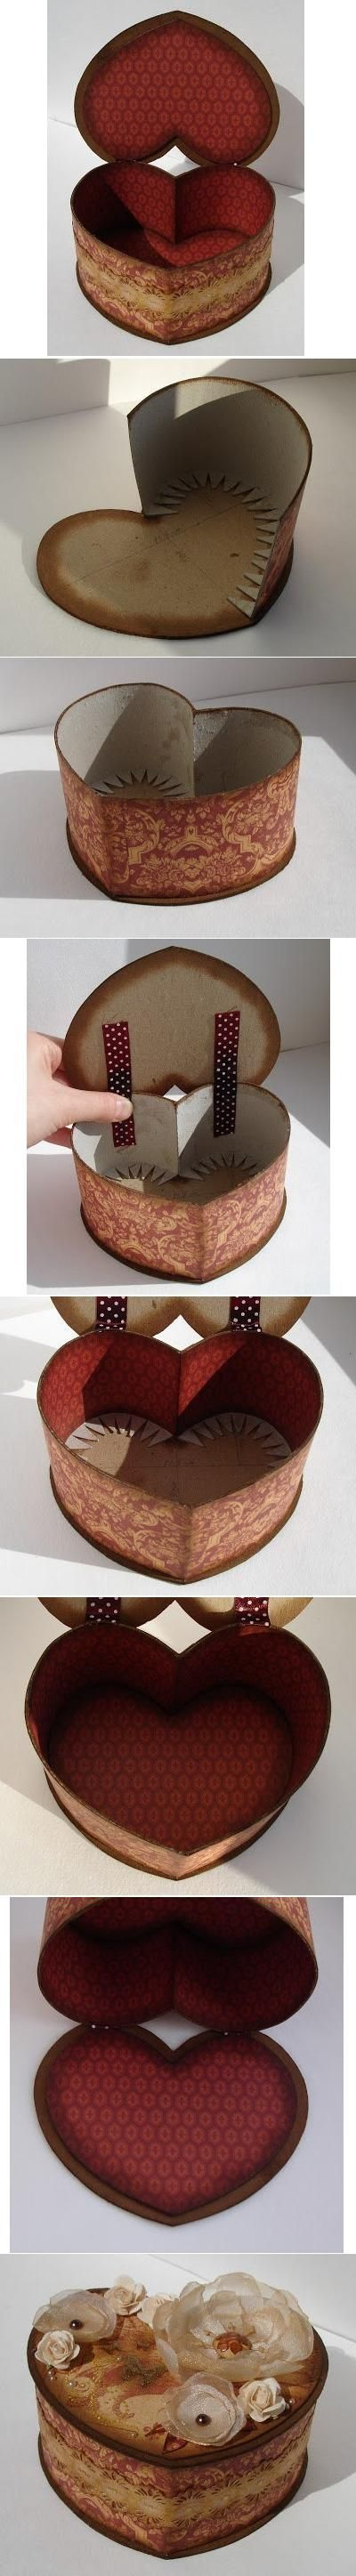 DIY-Heart Shaped Box | DIY Creative Ideas. Picture TUTORIAL